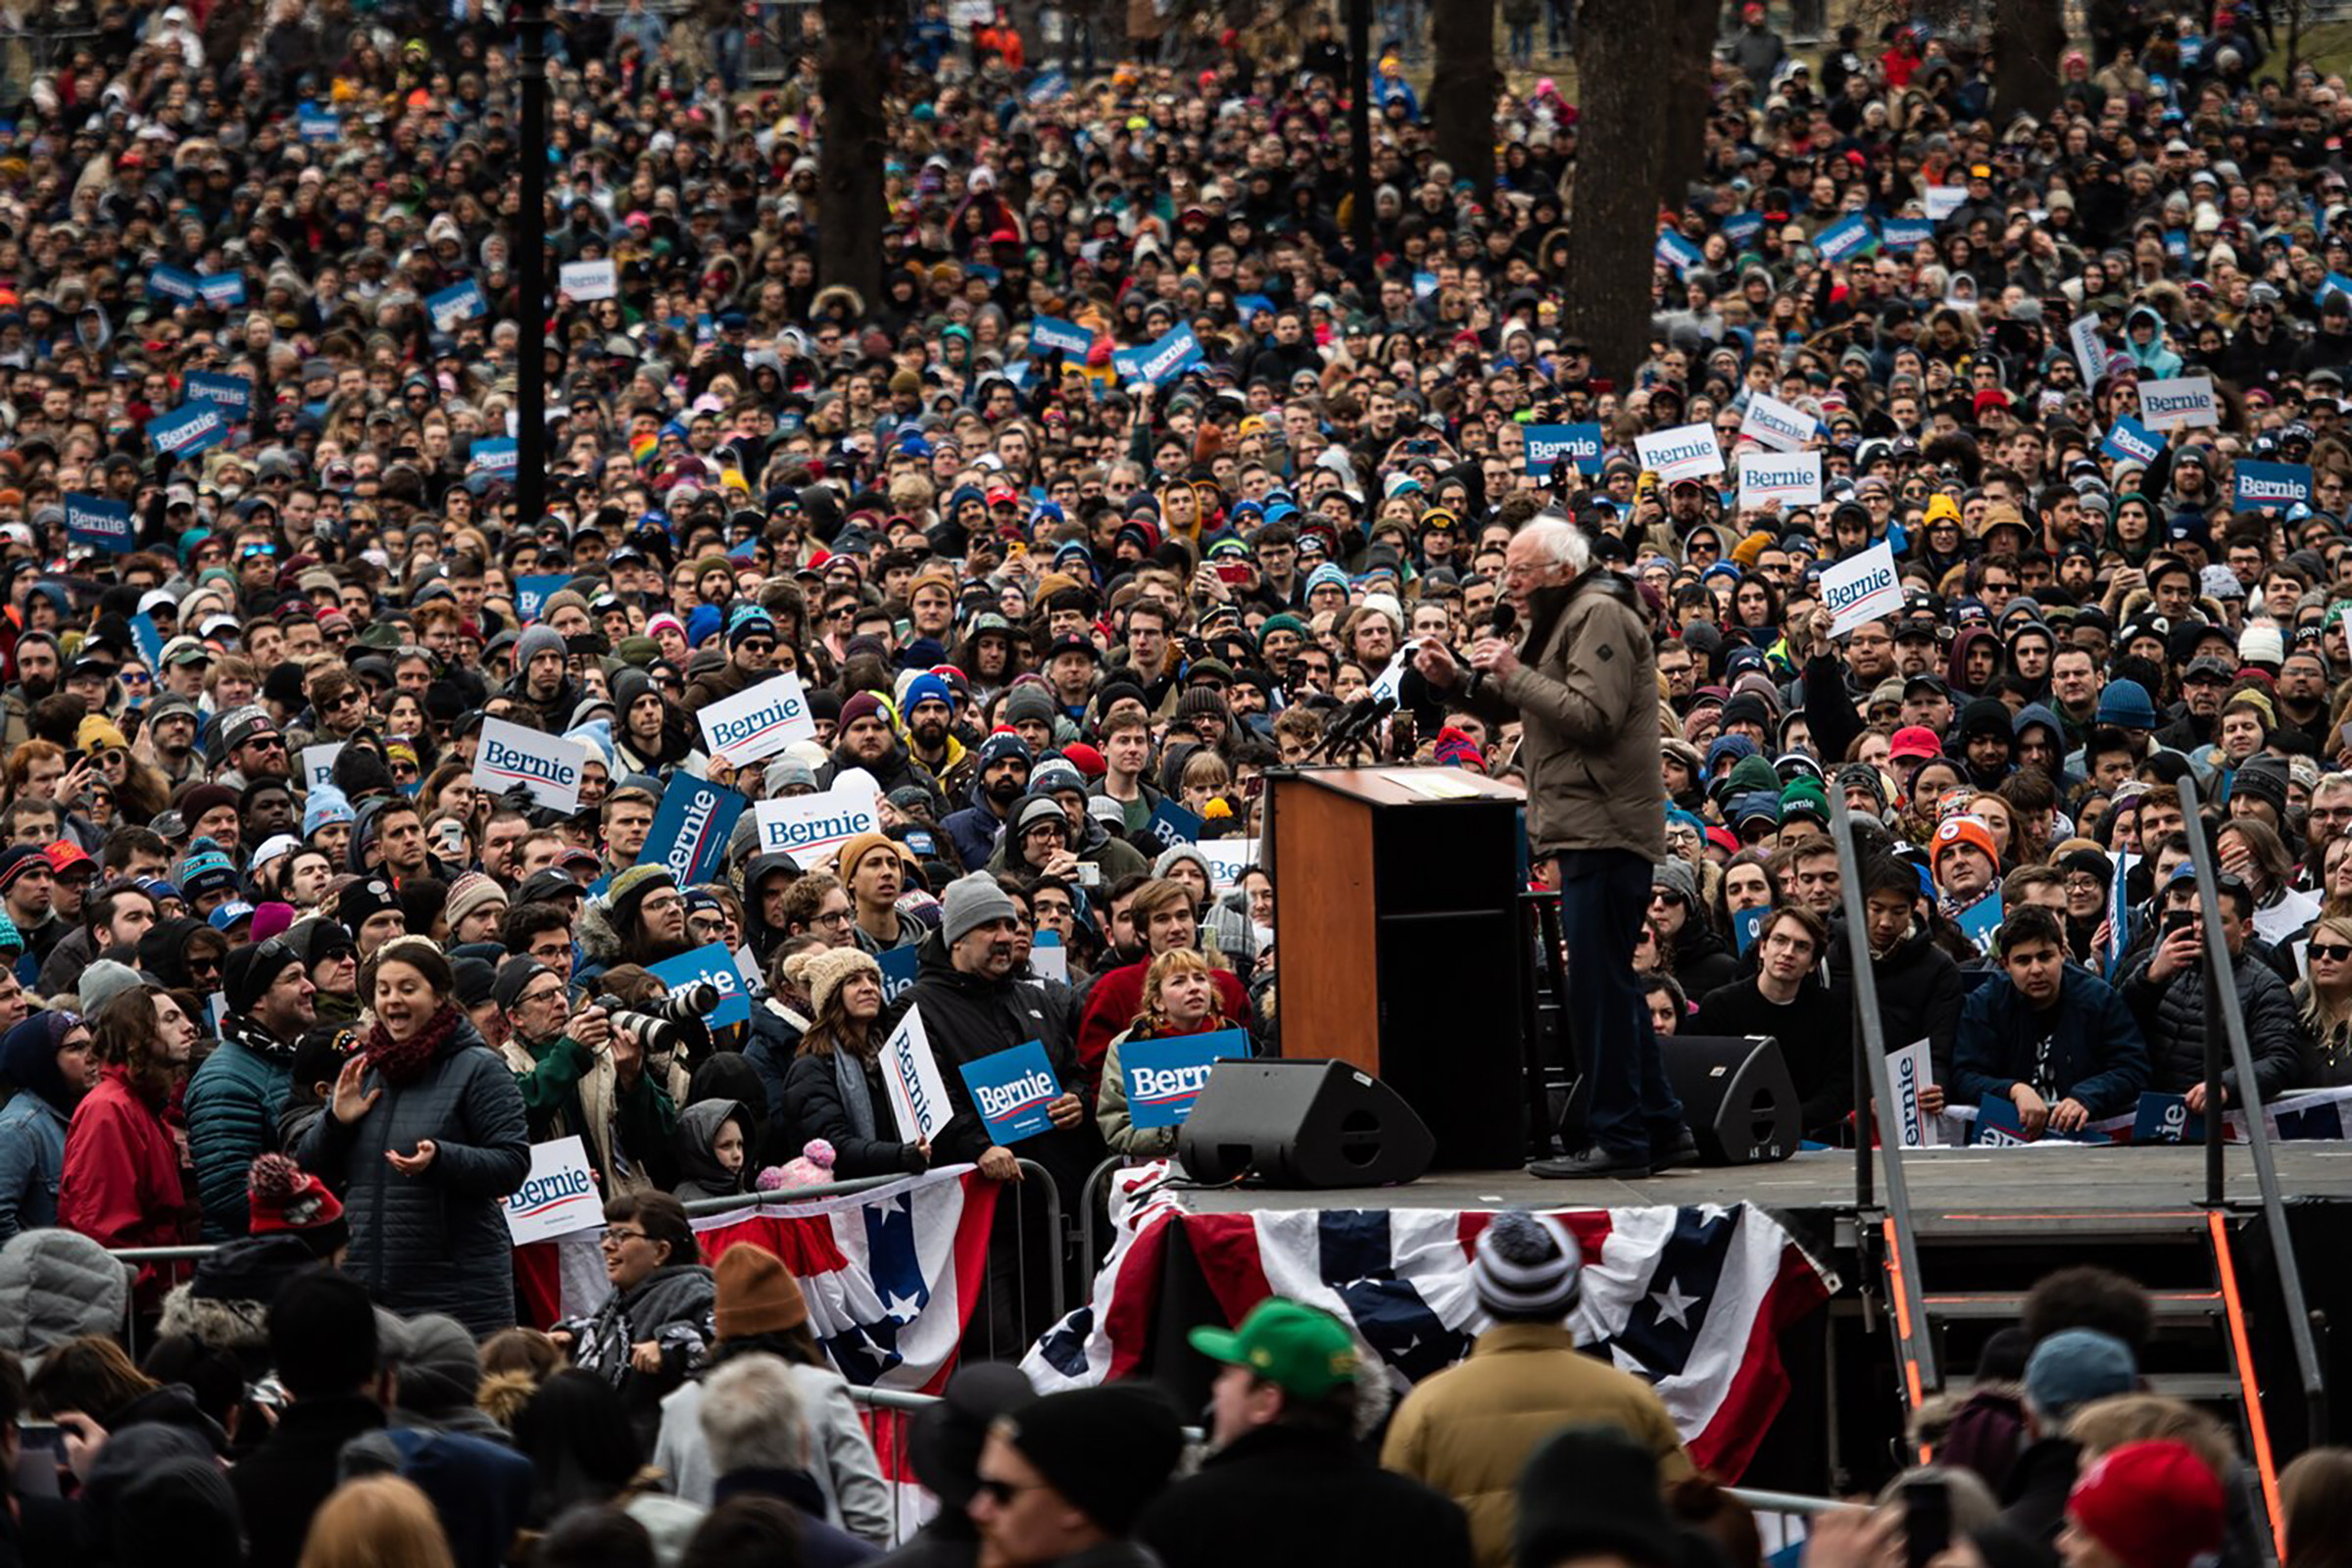 Bernie Sanders has the advantage on Super Tuesday as rivals jockey to hold down his delegate count